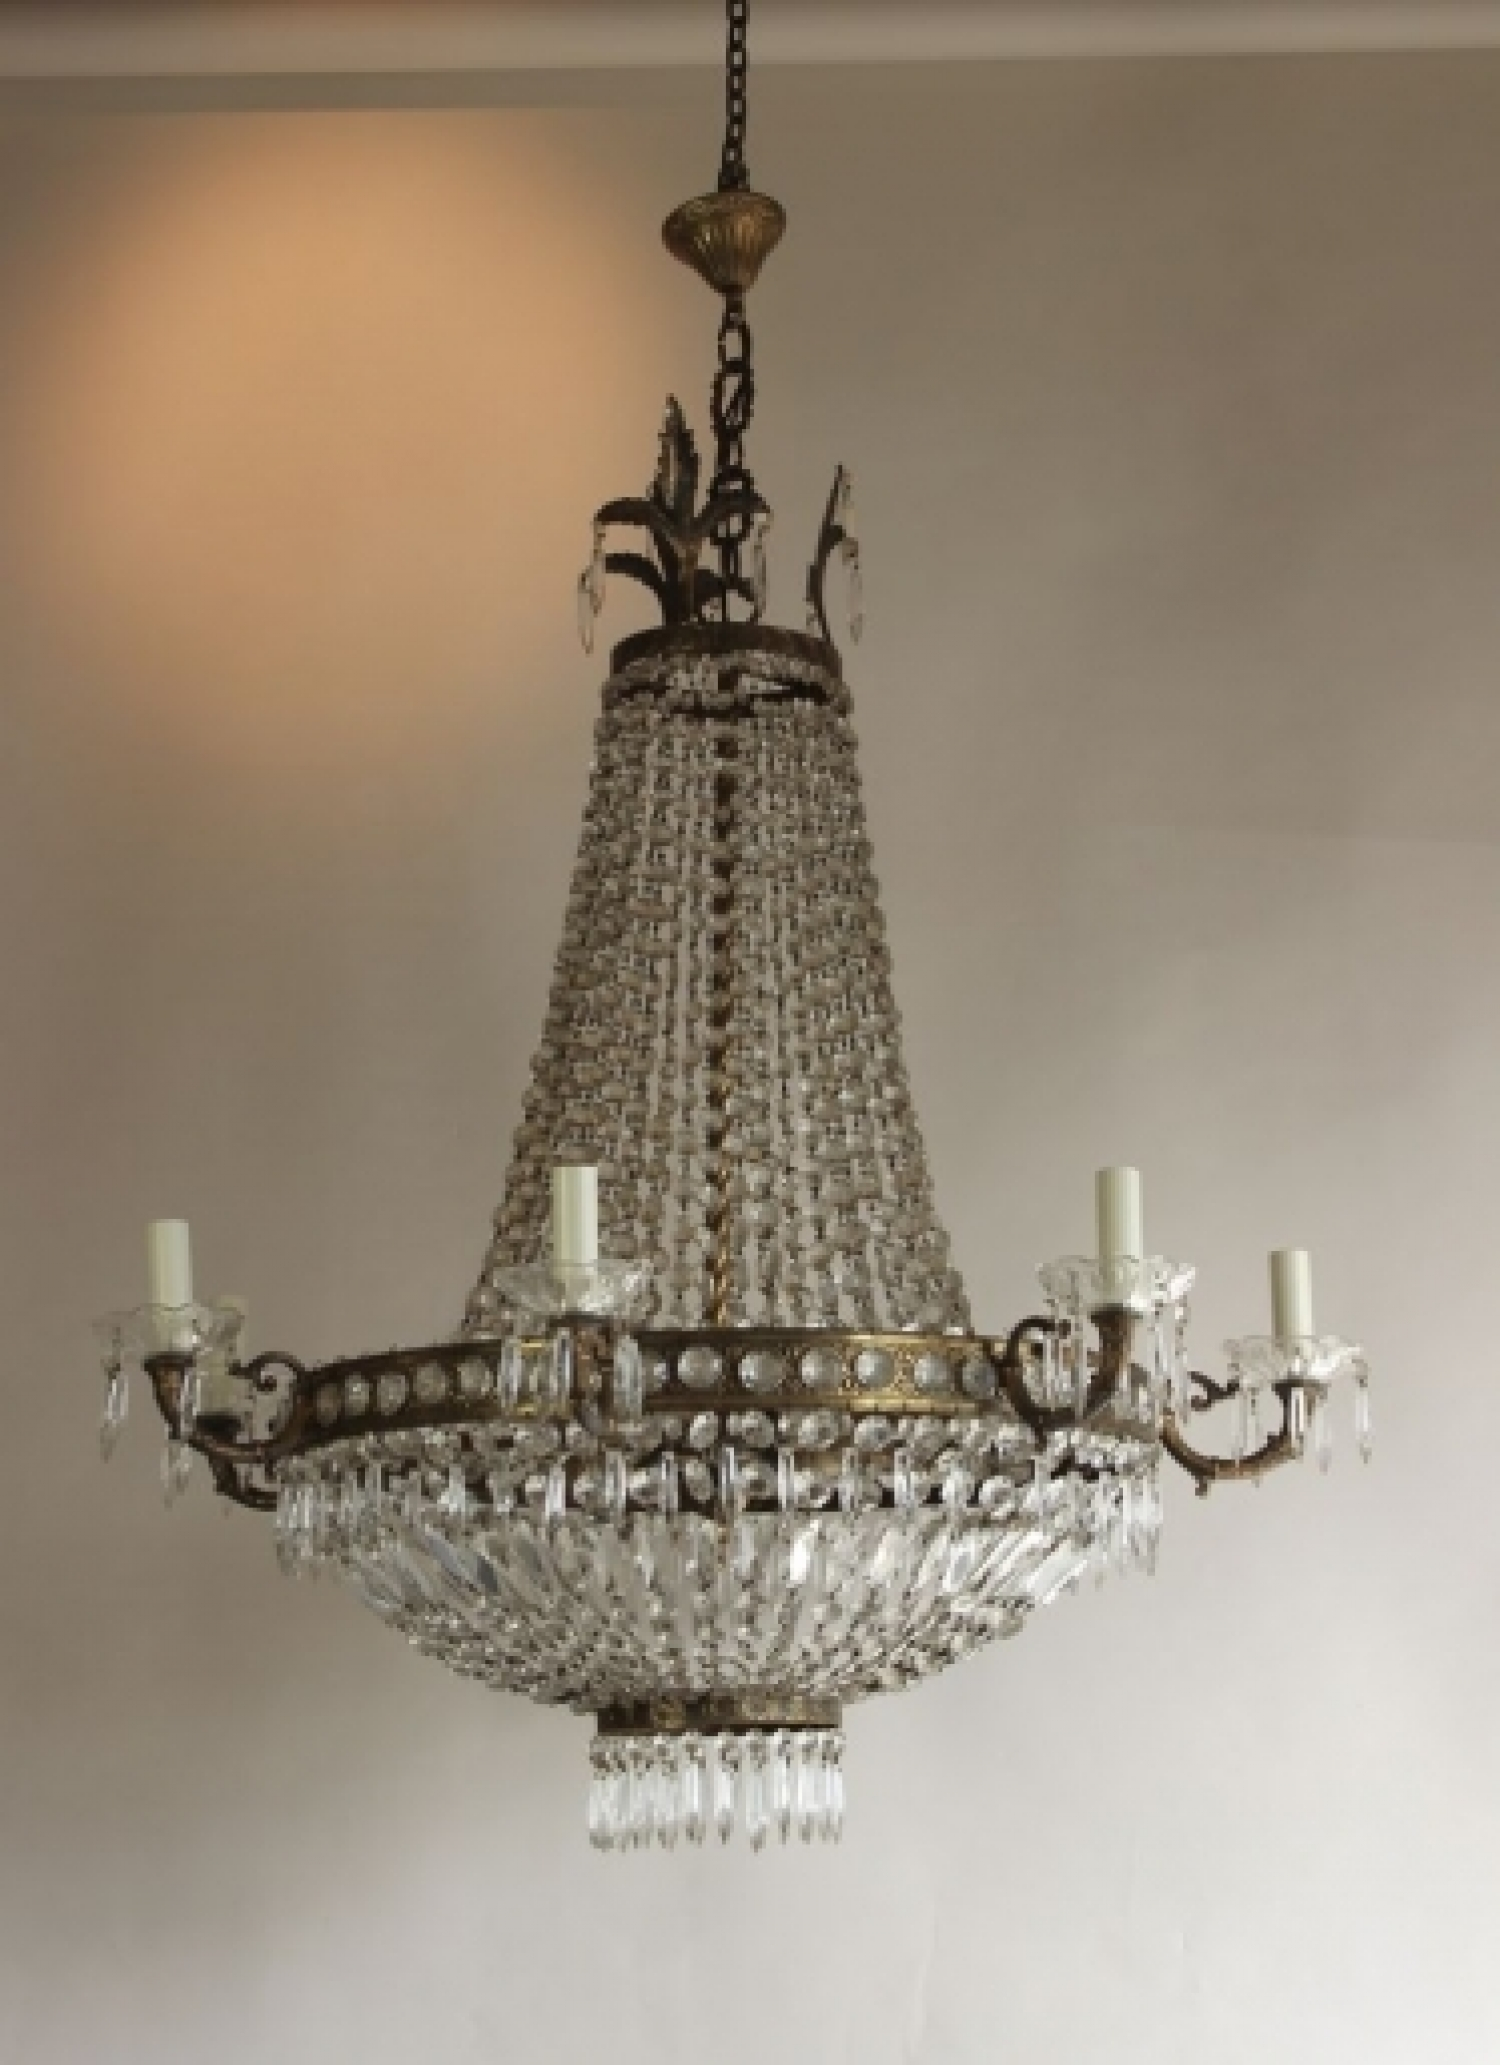 Antique chandeliers 80 100 cms wide norfolk decorative antiques antique chandeliers 80 100 cms wide image 3 mozeypictures Images